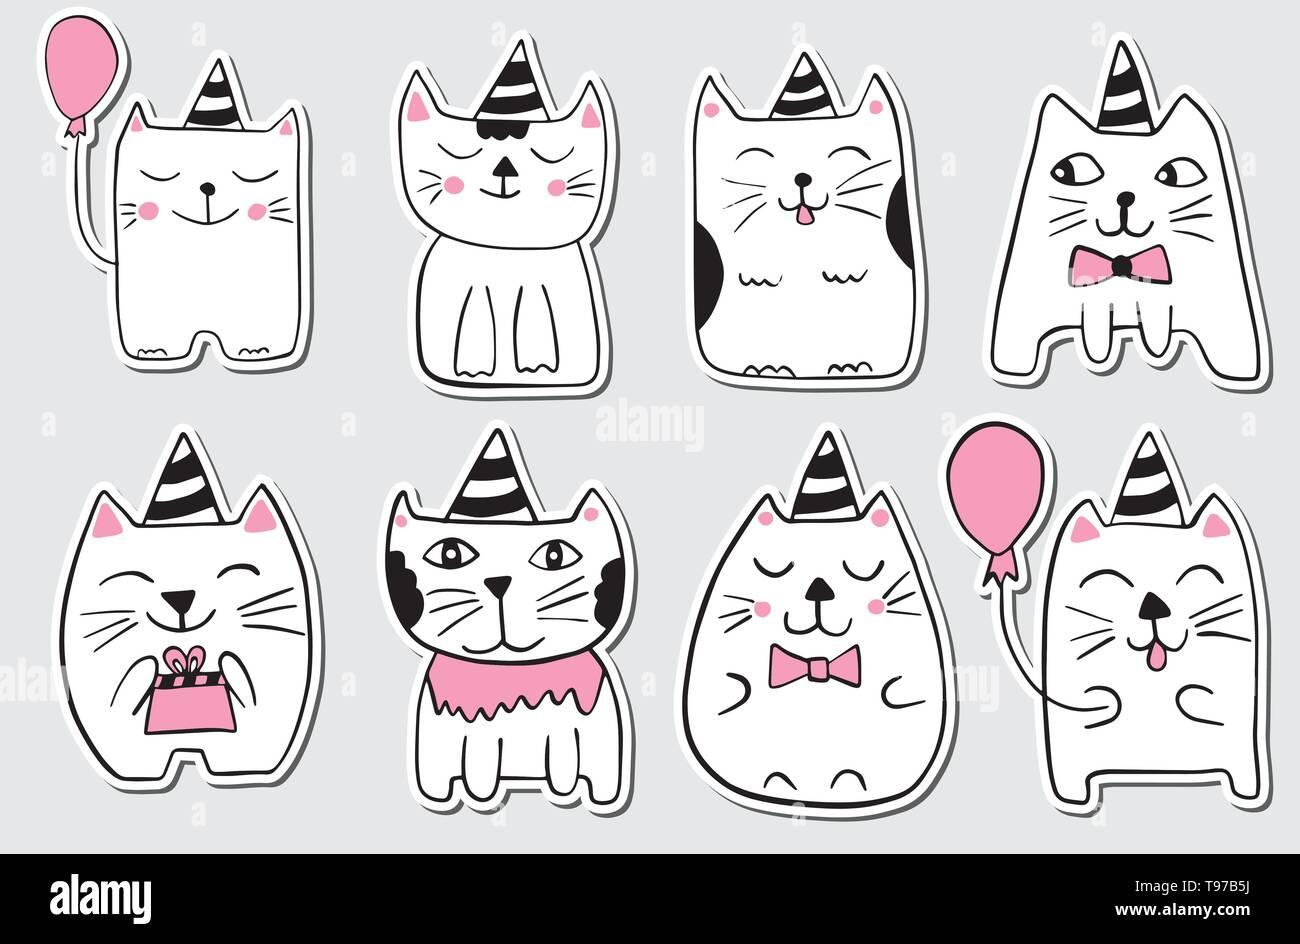 Cute Cats Hand Drawn Stylized Set Of Stickers Outline Doodle Animals Cartoon Characters Vector Illustration Stock Vector Image Art Alamy